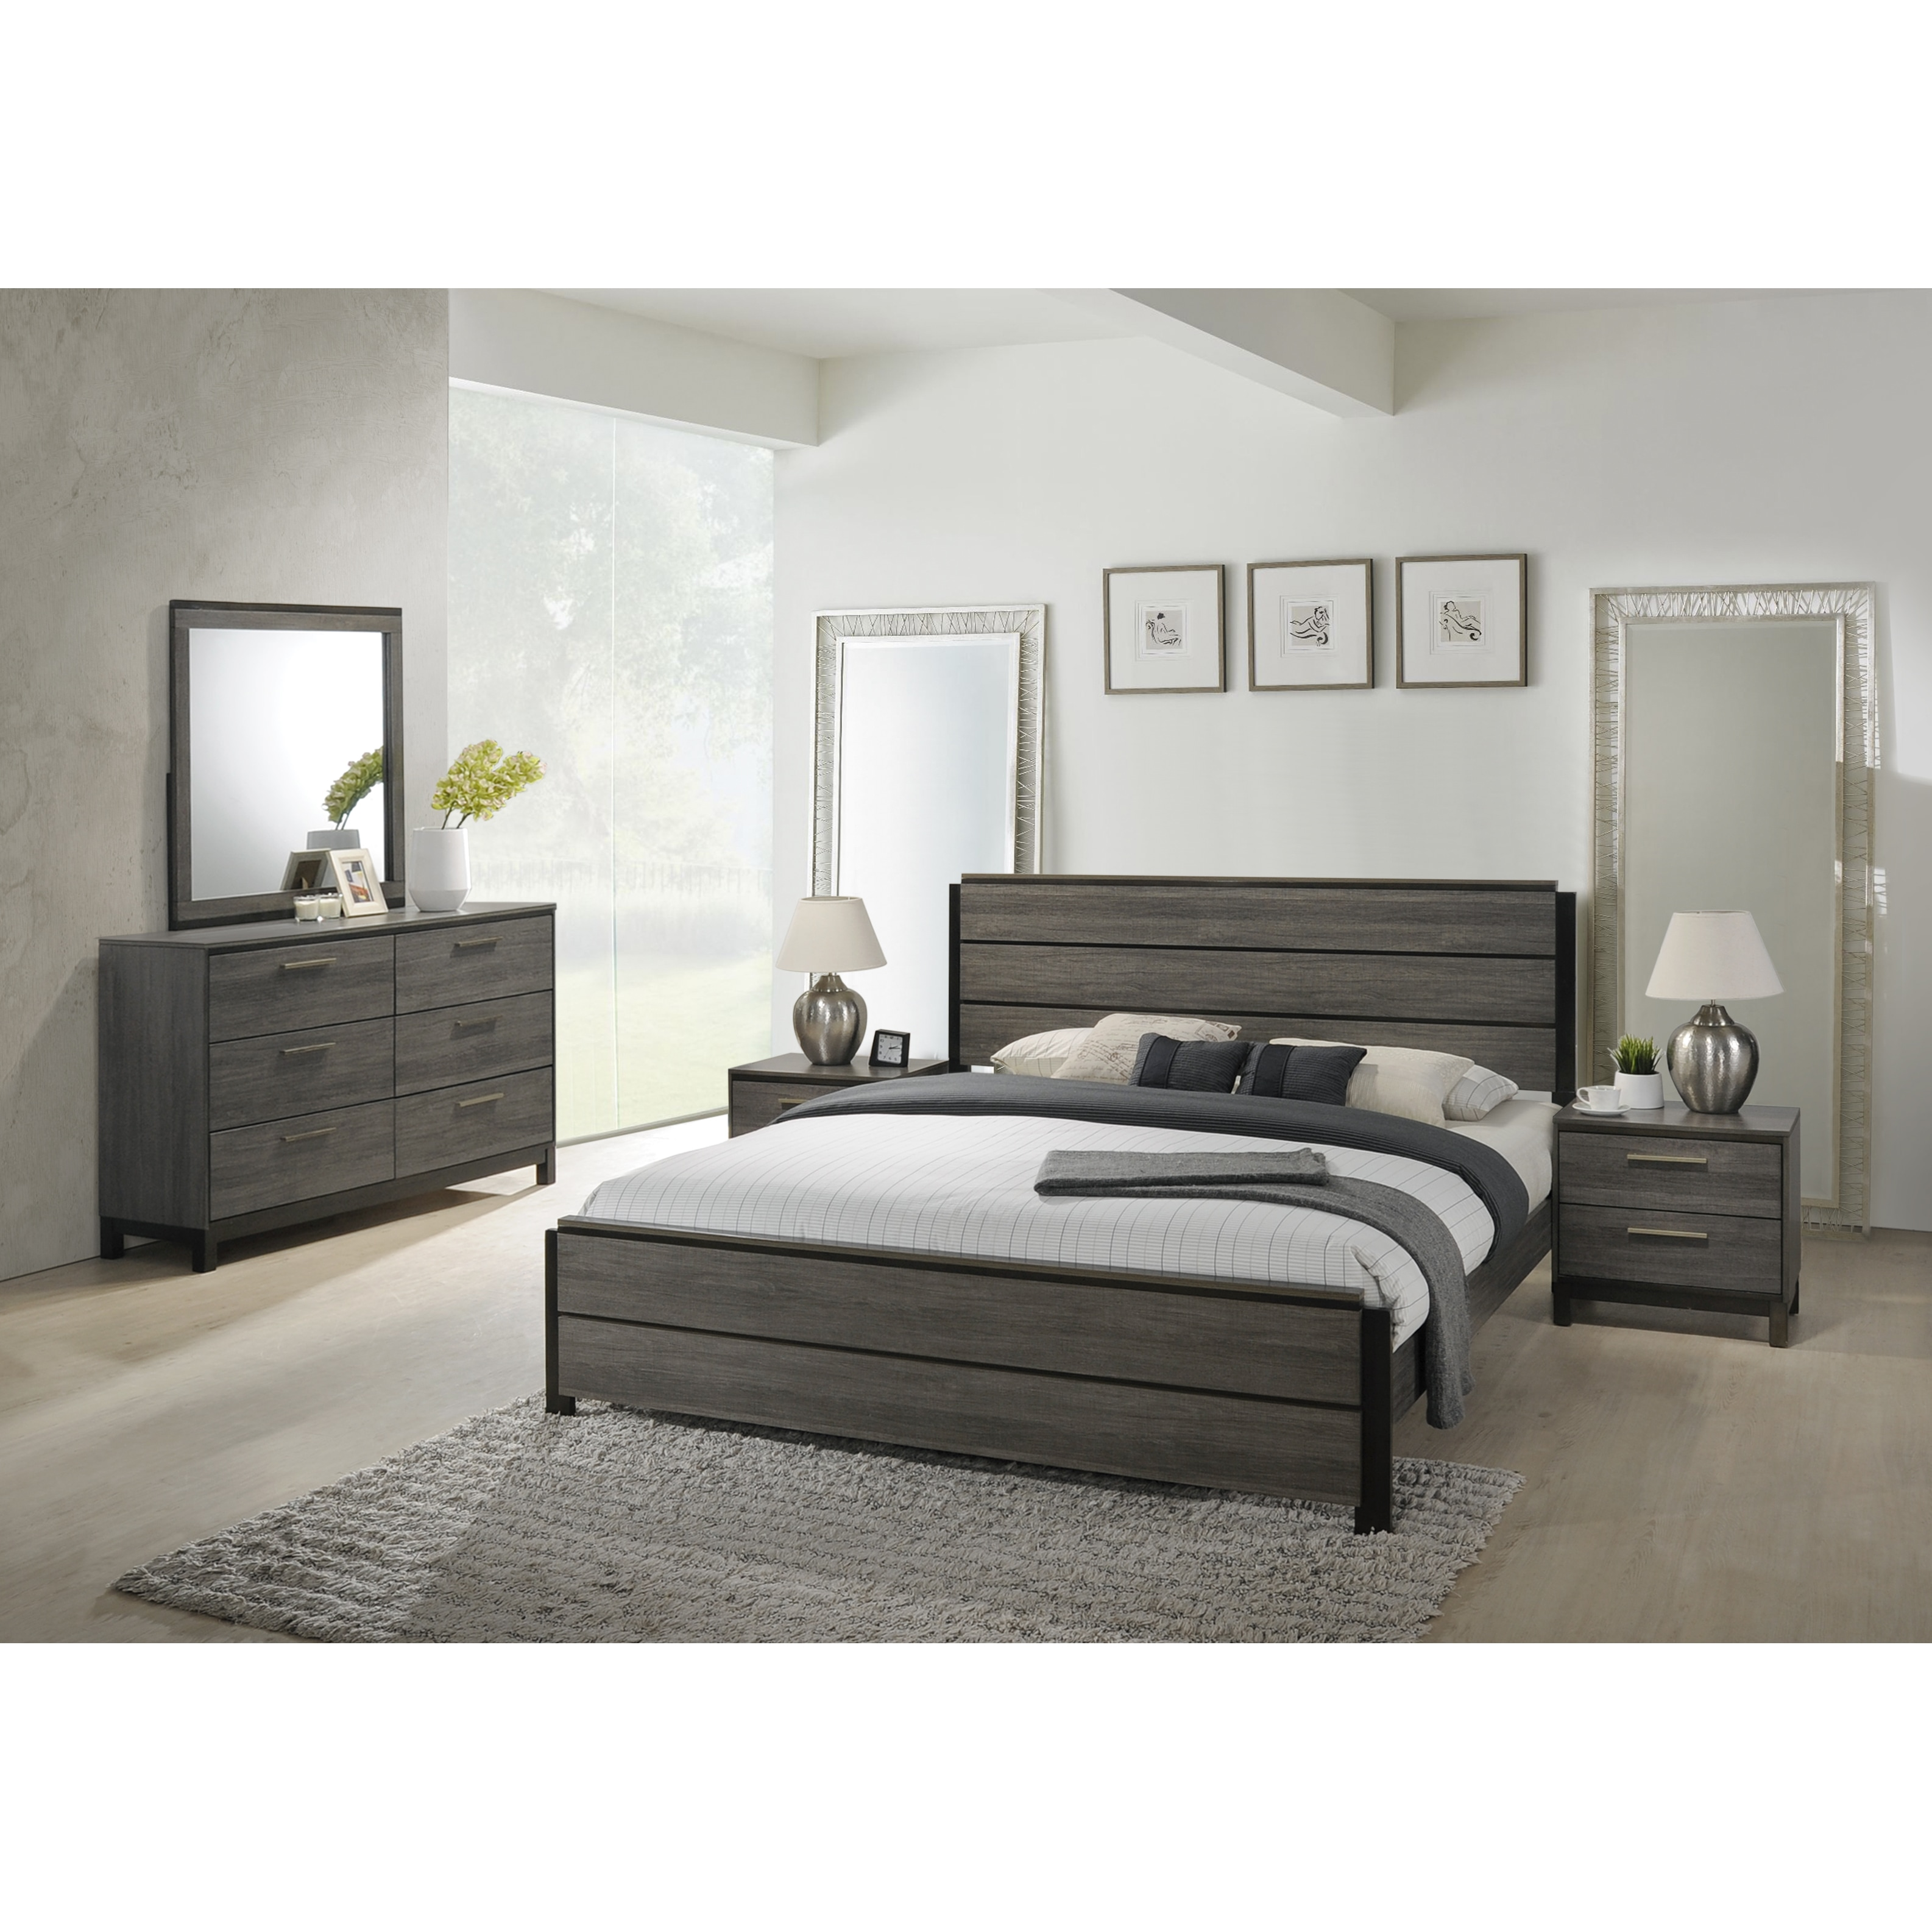 Antique Grey Finish Wood Bed Room Set